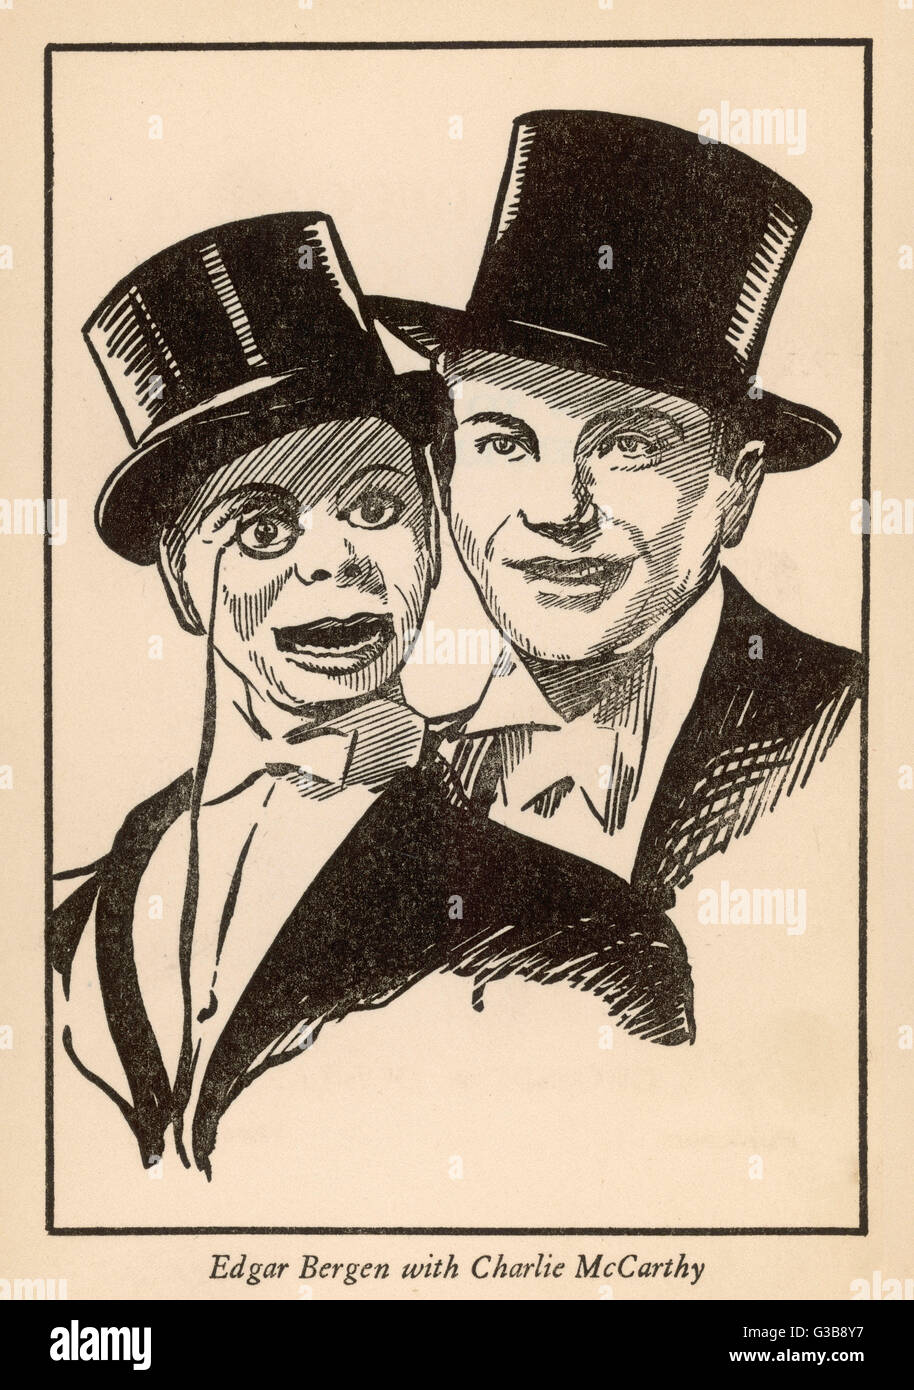 Edgar Bergen and Charlie  McCarthy, his ventriloquist's  dummy        Date: 1938 - Stock Image